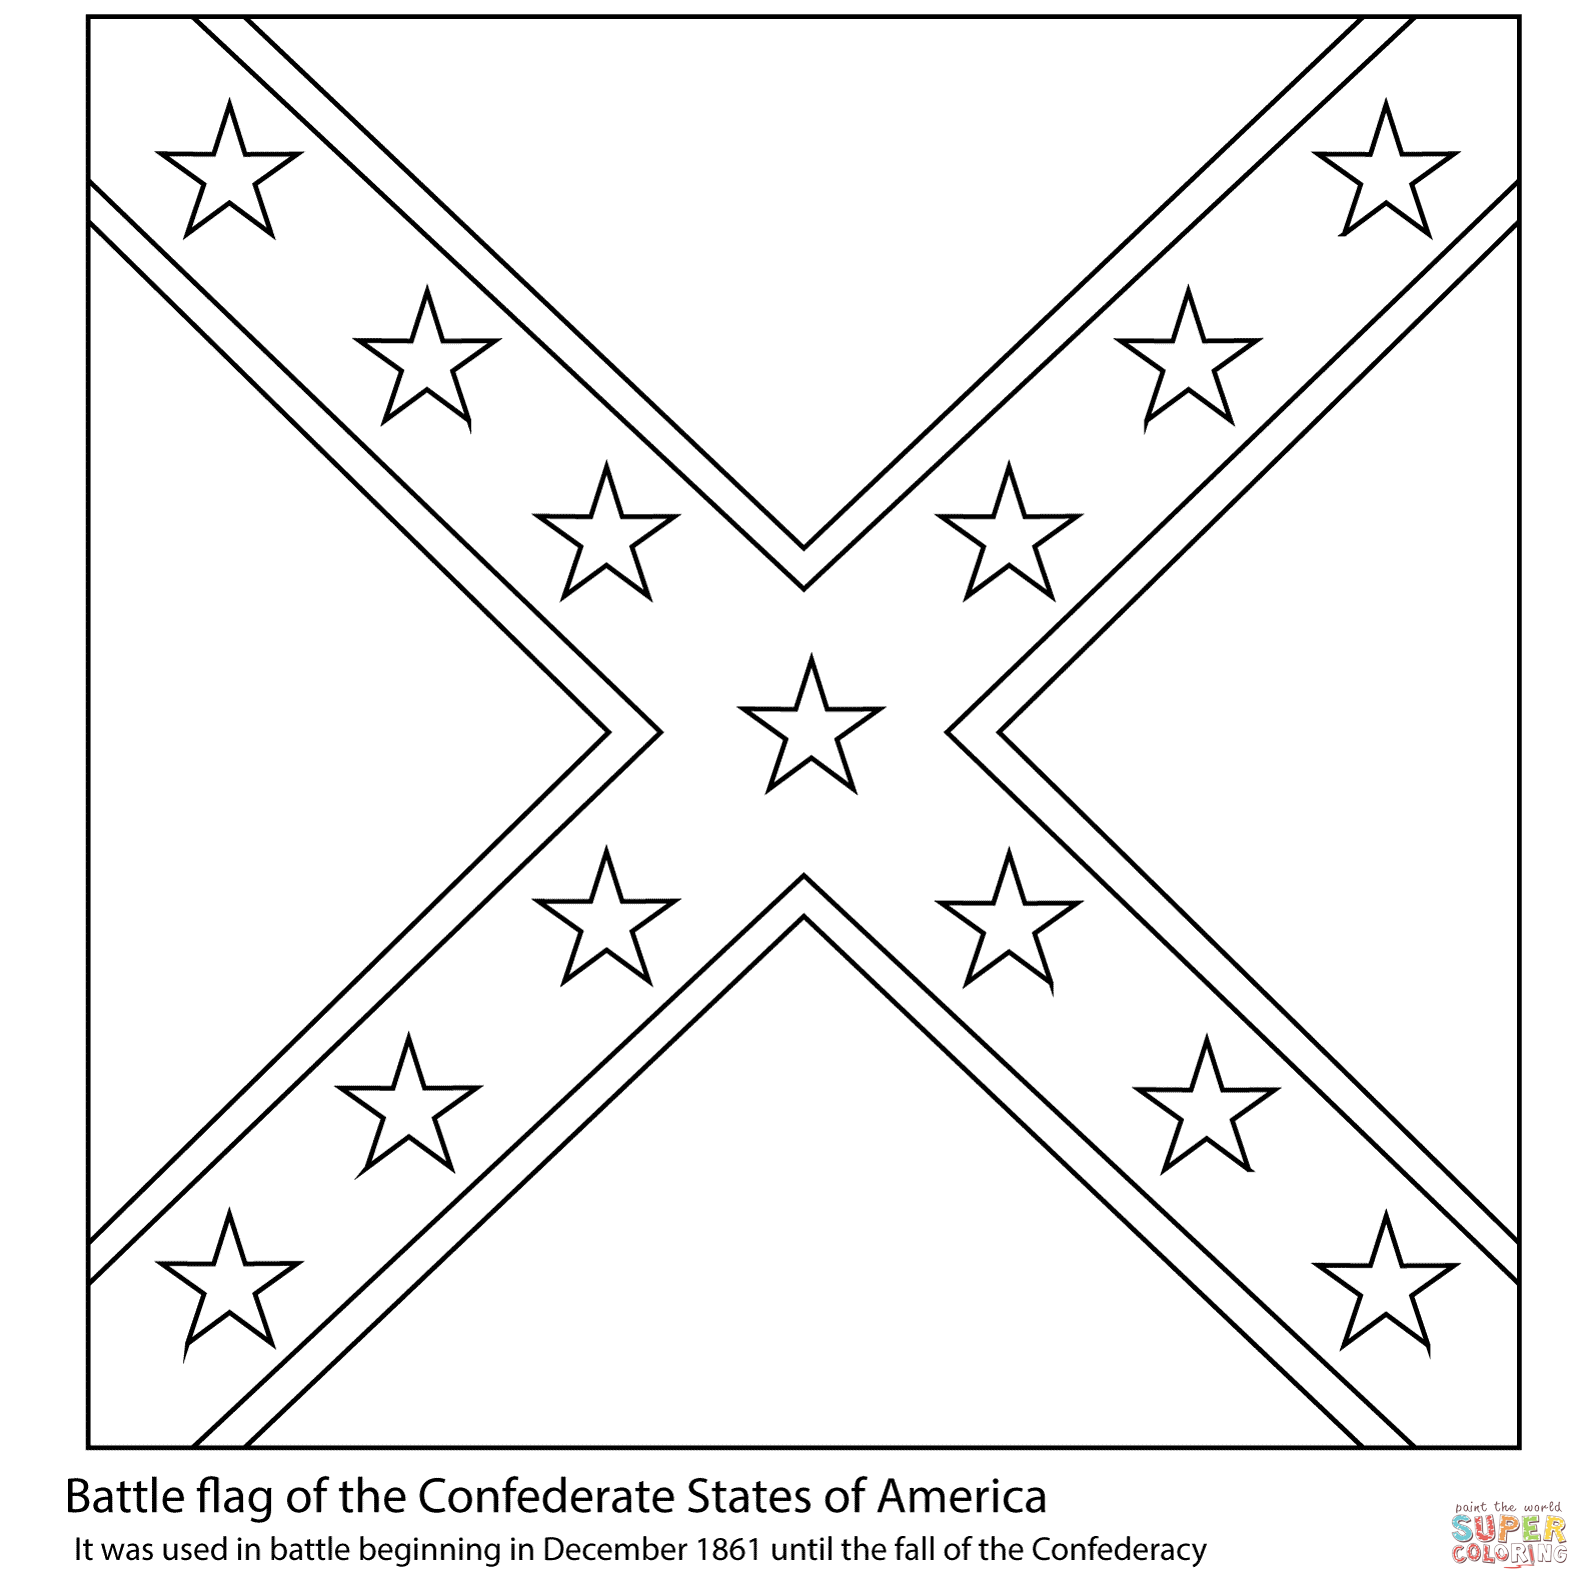 Memorial day flag coloring pages - Battle Flag Of The Confederate States Of America Download Free Coloring Pages